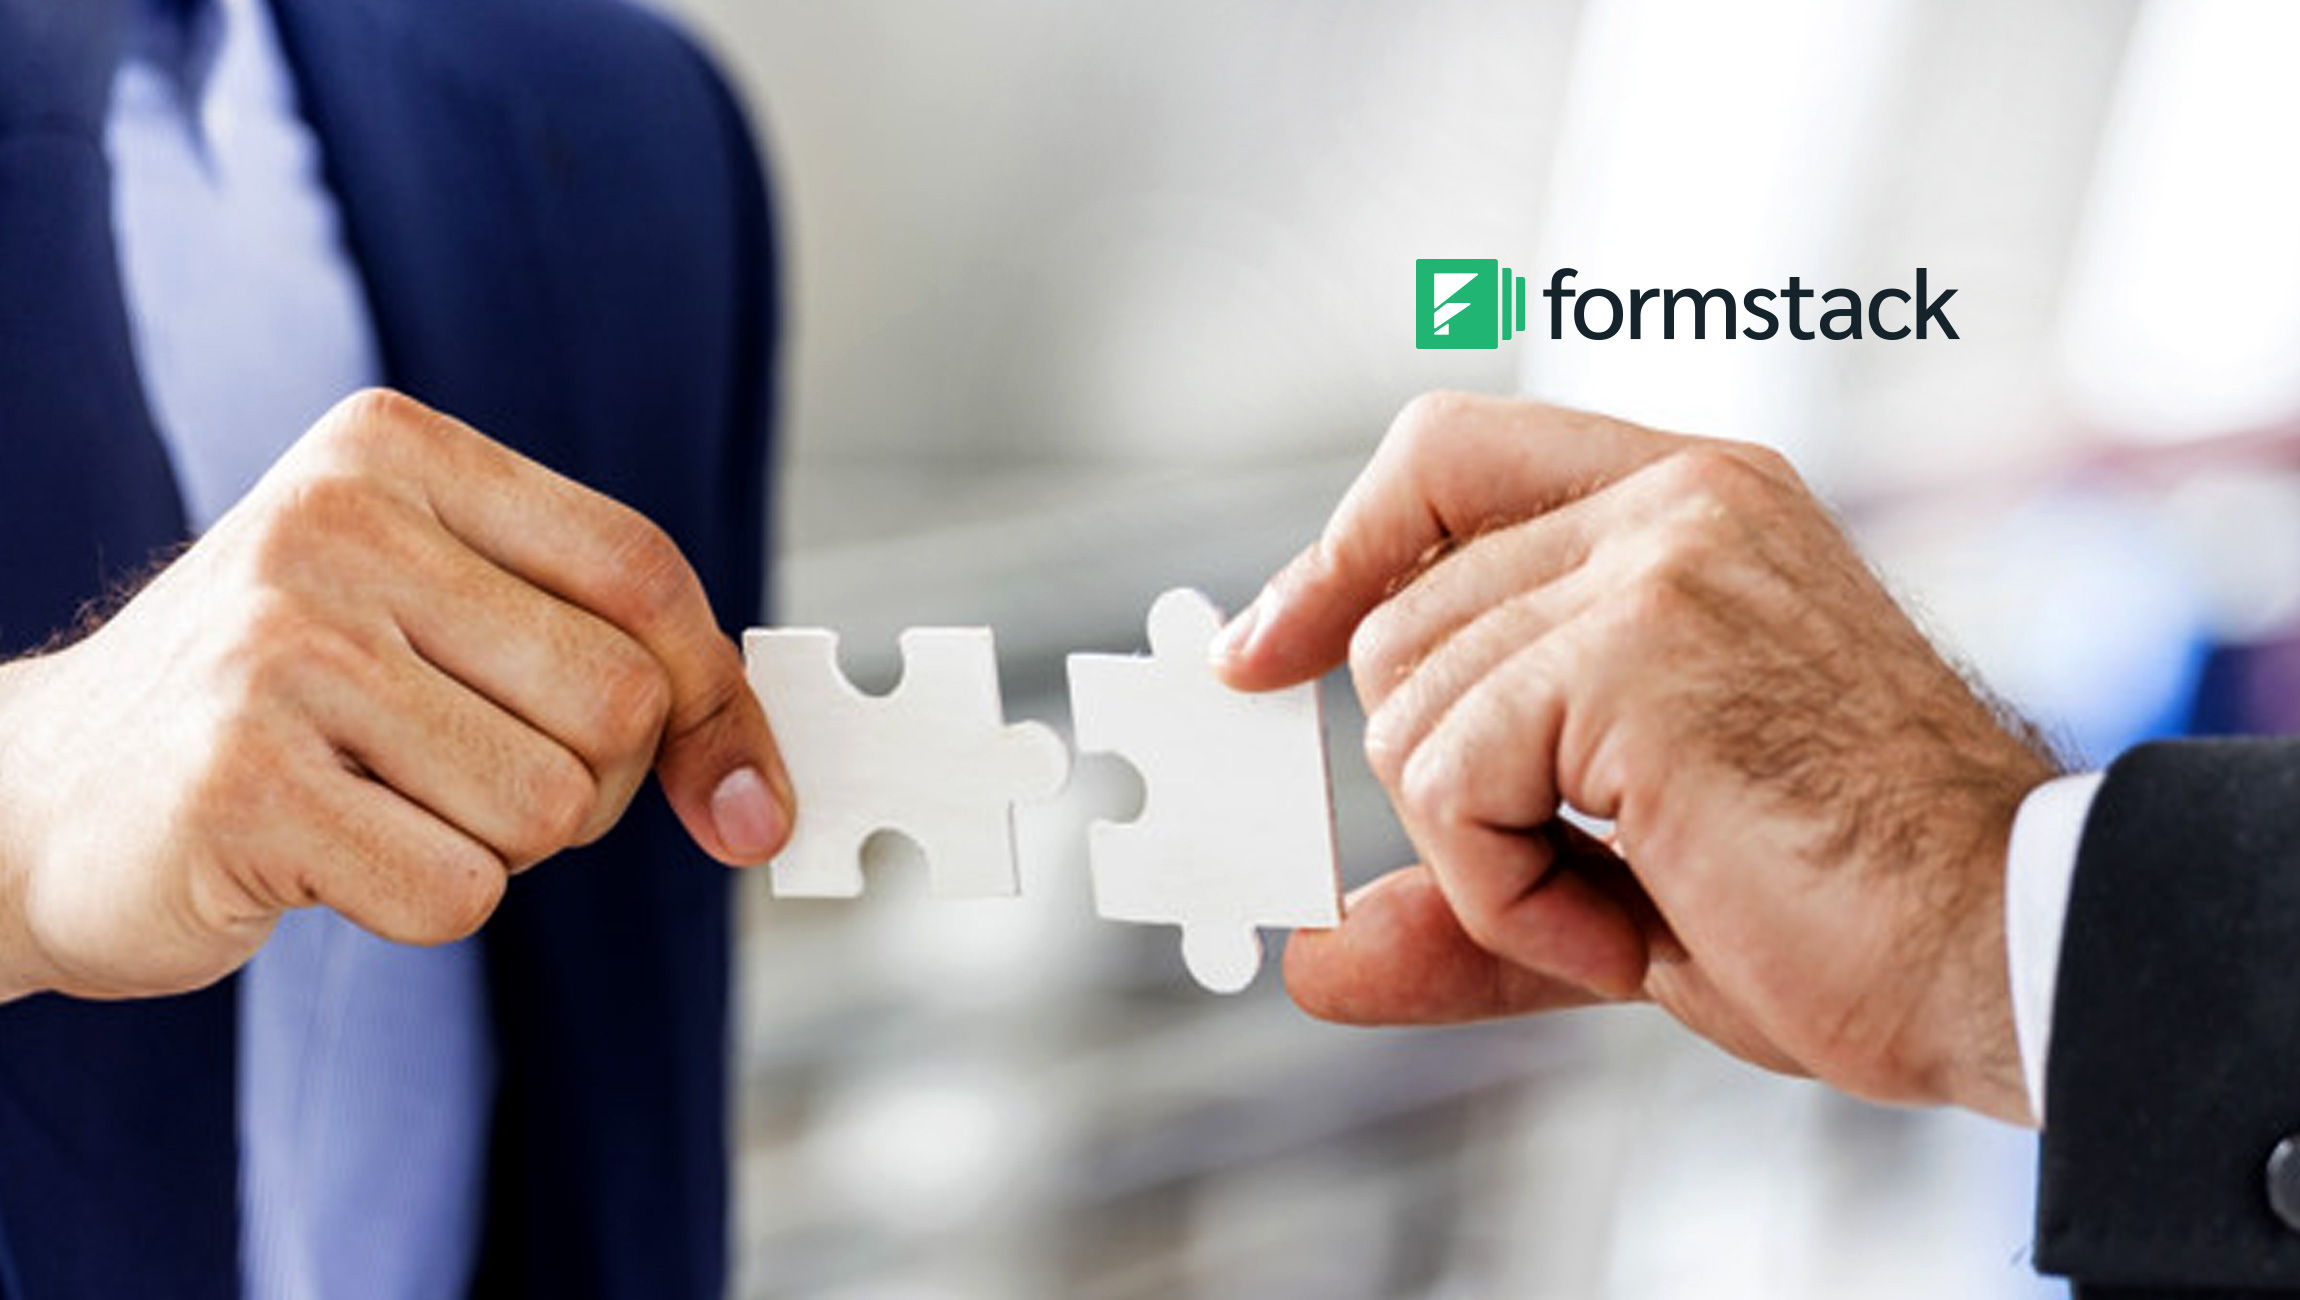 Formstack Acquires WebMerge, Enhances Document Creation and Automation Capabilities